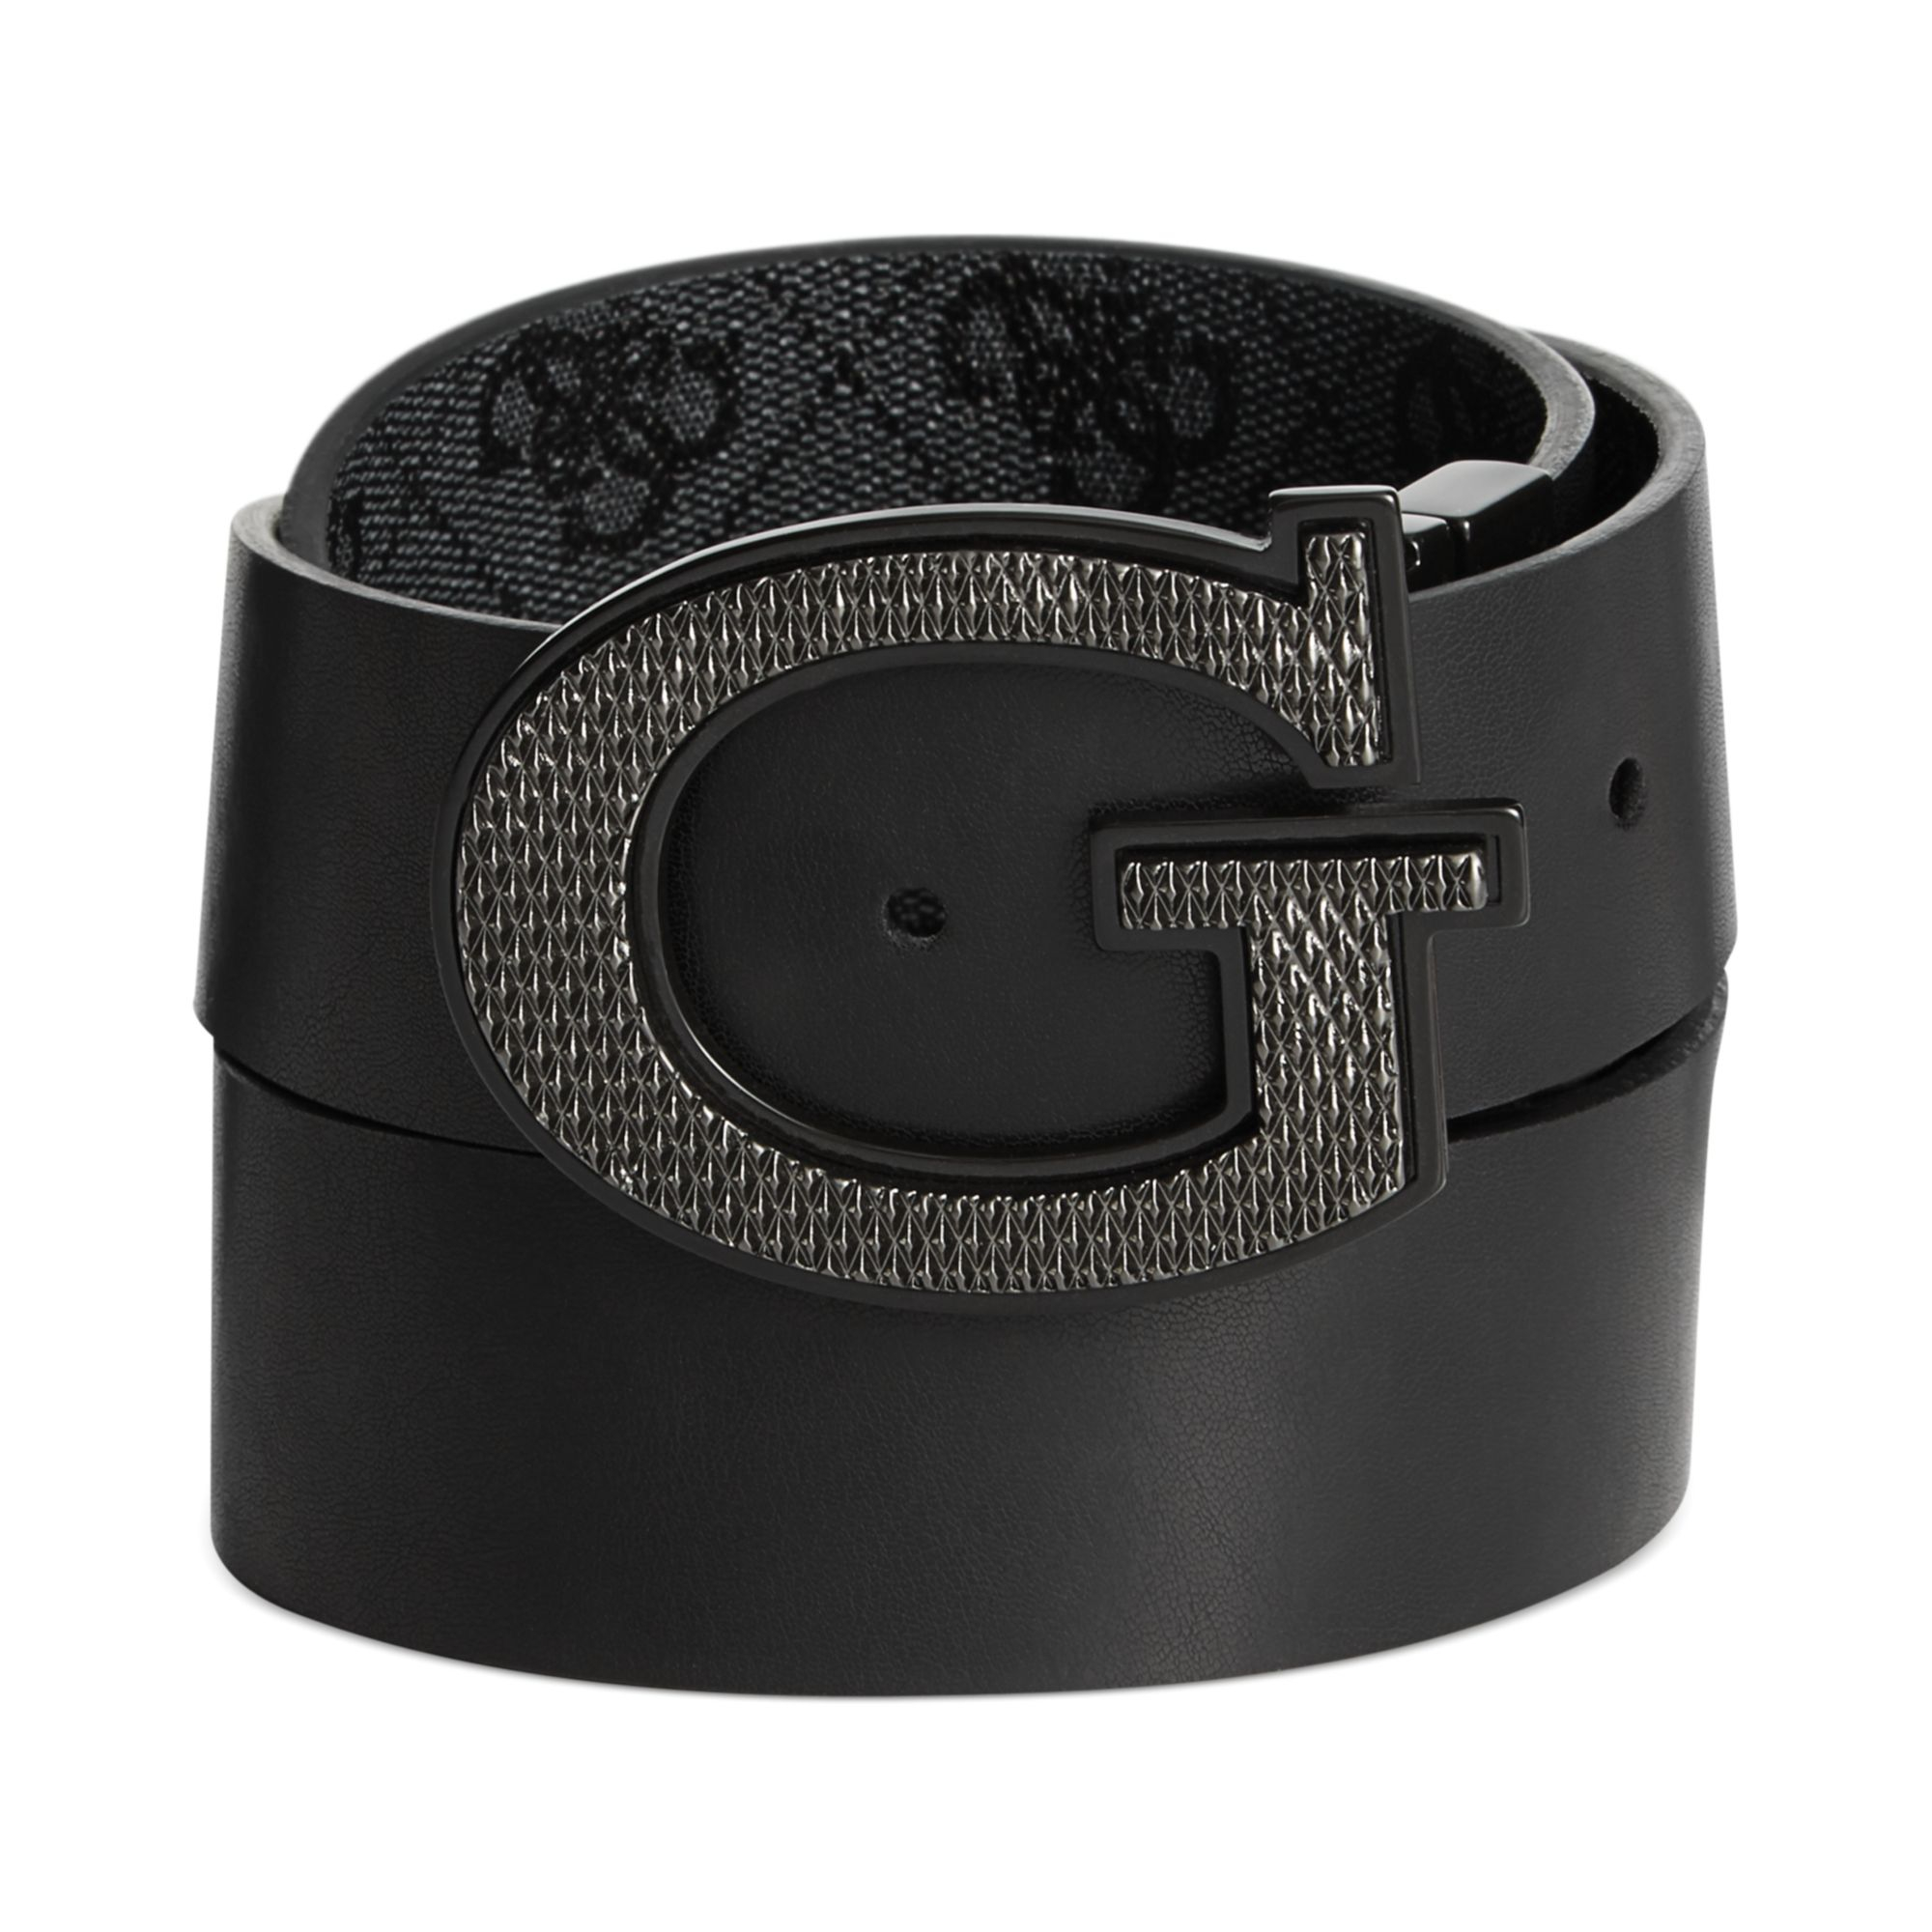 Lyst - Guess 35mm Reversible Leather Logo Buckle Belt in Black for Men bcc797c90df4